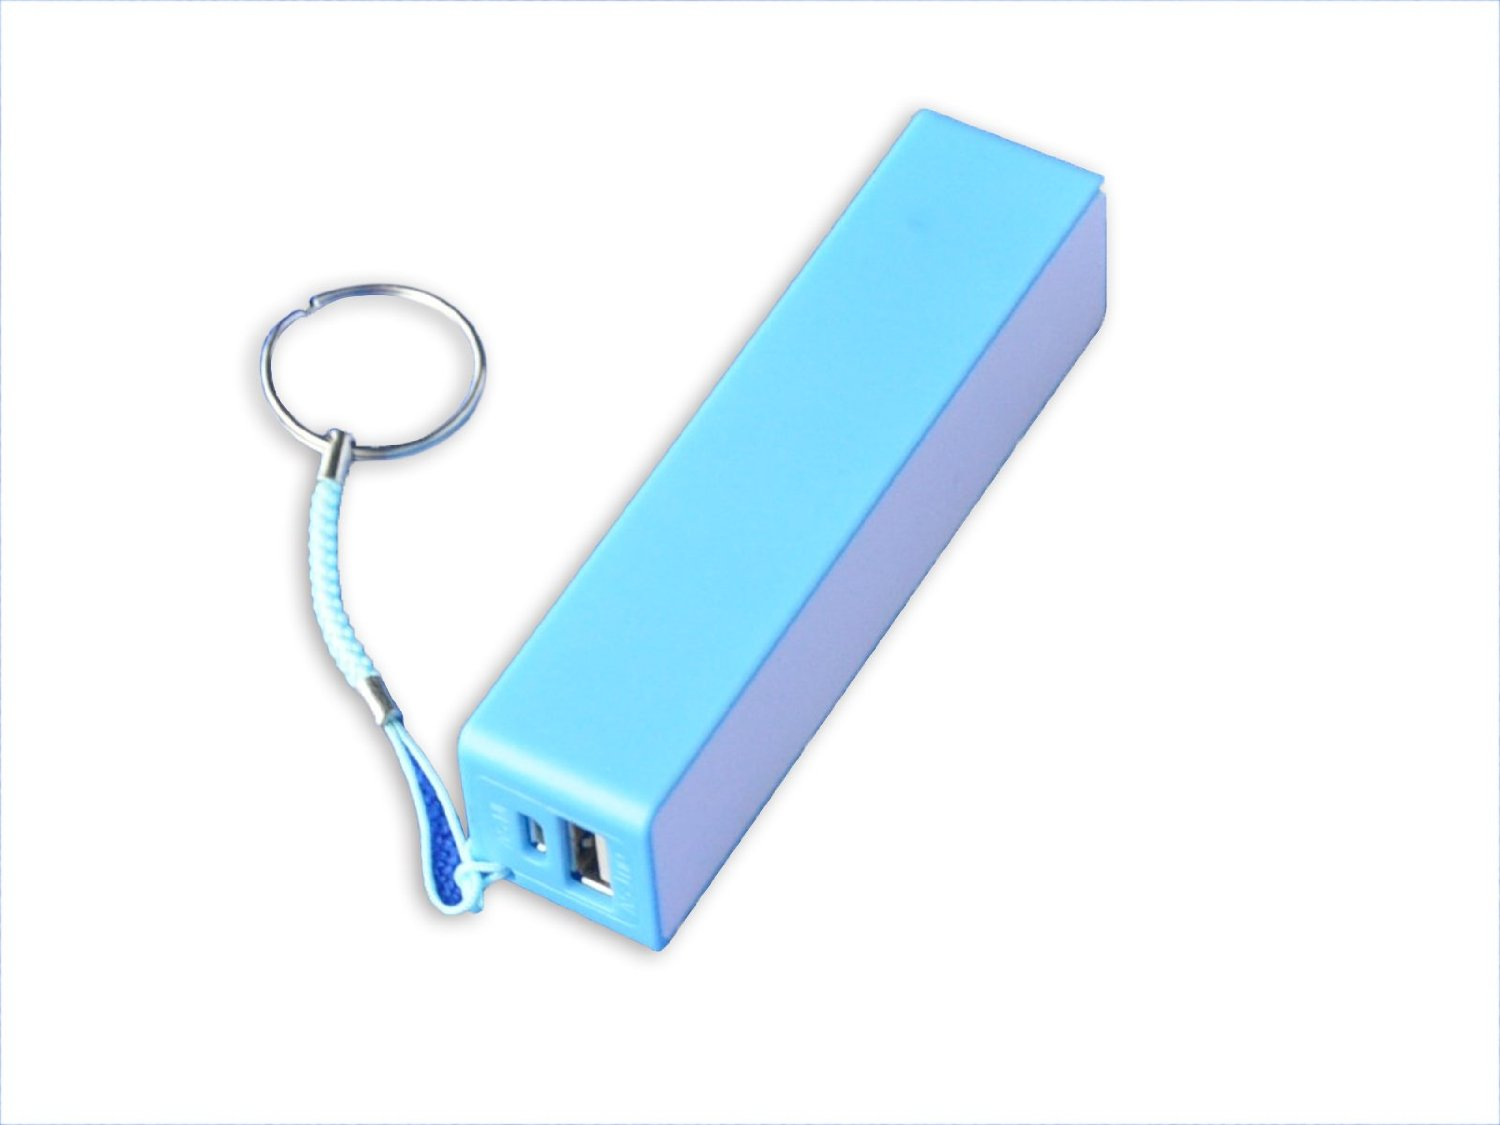 Wondermart 2600mAh 5200mAh 10400mAh 12000mAh Universal High Capacity Power Bank Portable External Battery Charger Pack for Cell Phones Smart Phones Tablets Camera Game and Other USB-Charge Devices (27# 2600mAh Blue)